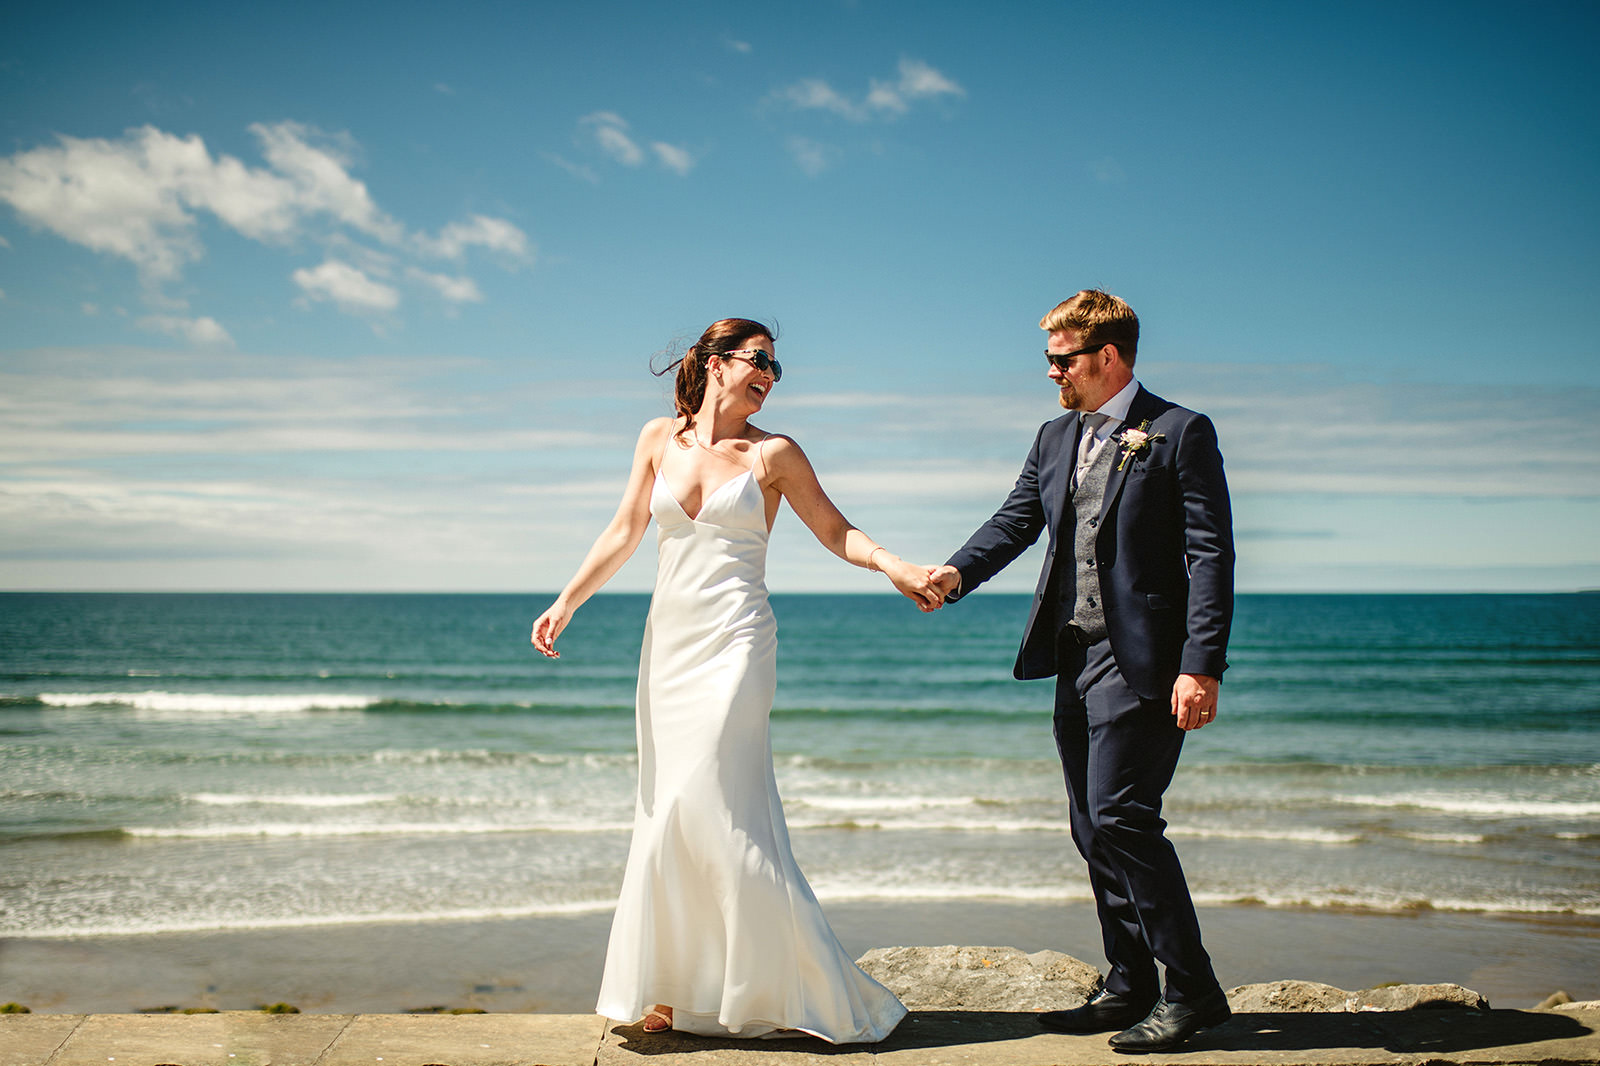 bride leading groom on strandhill beach